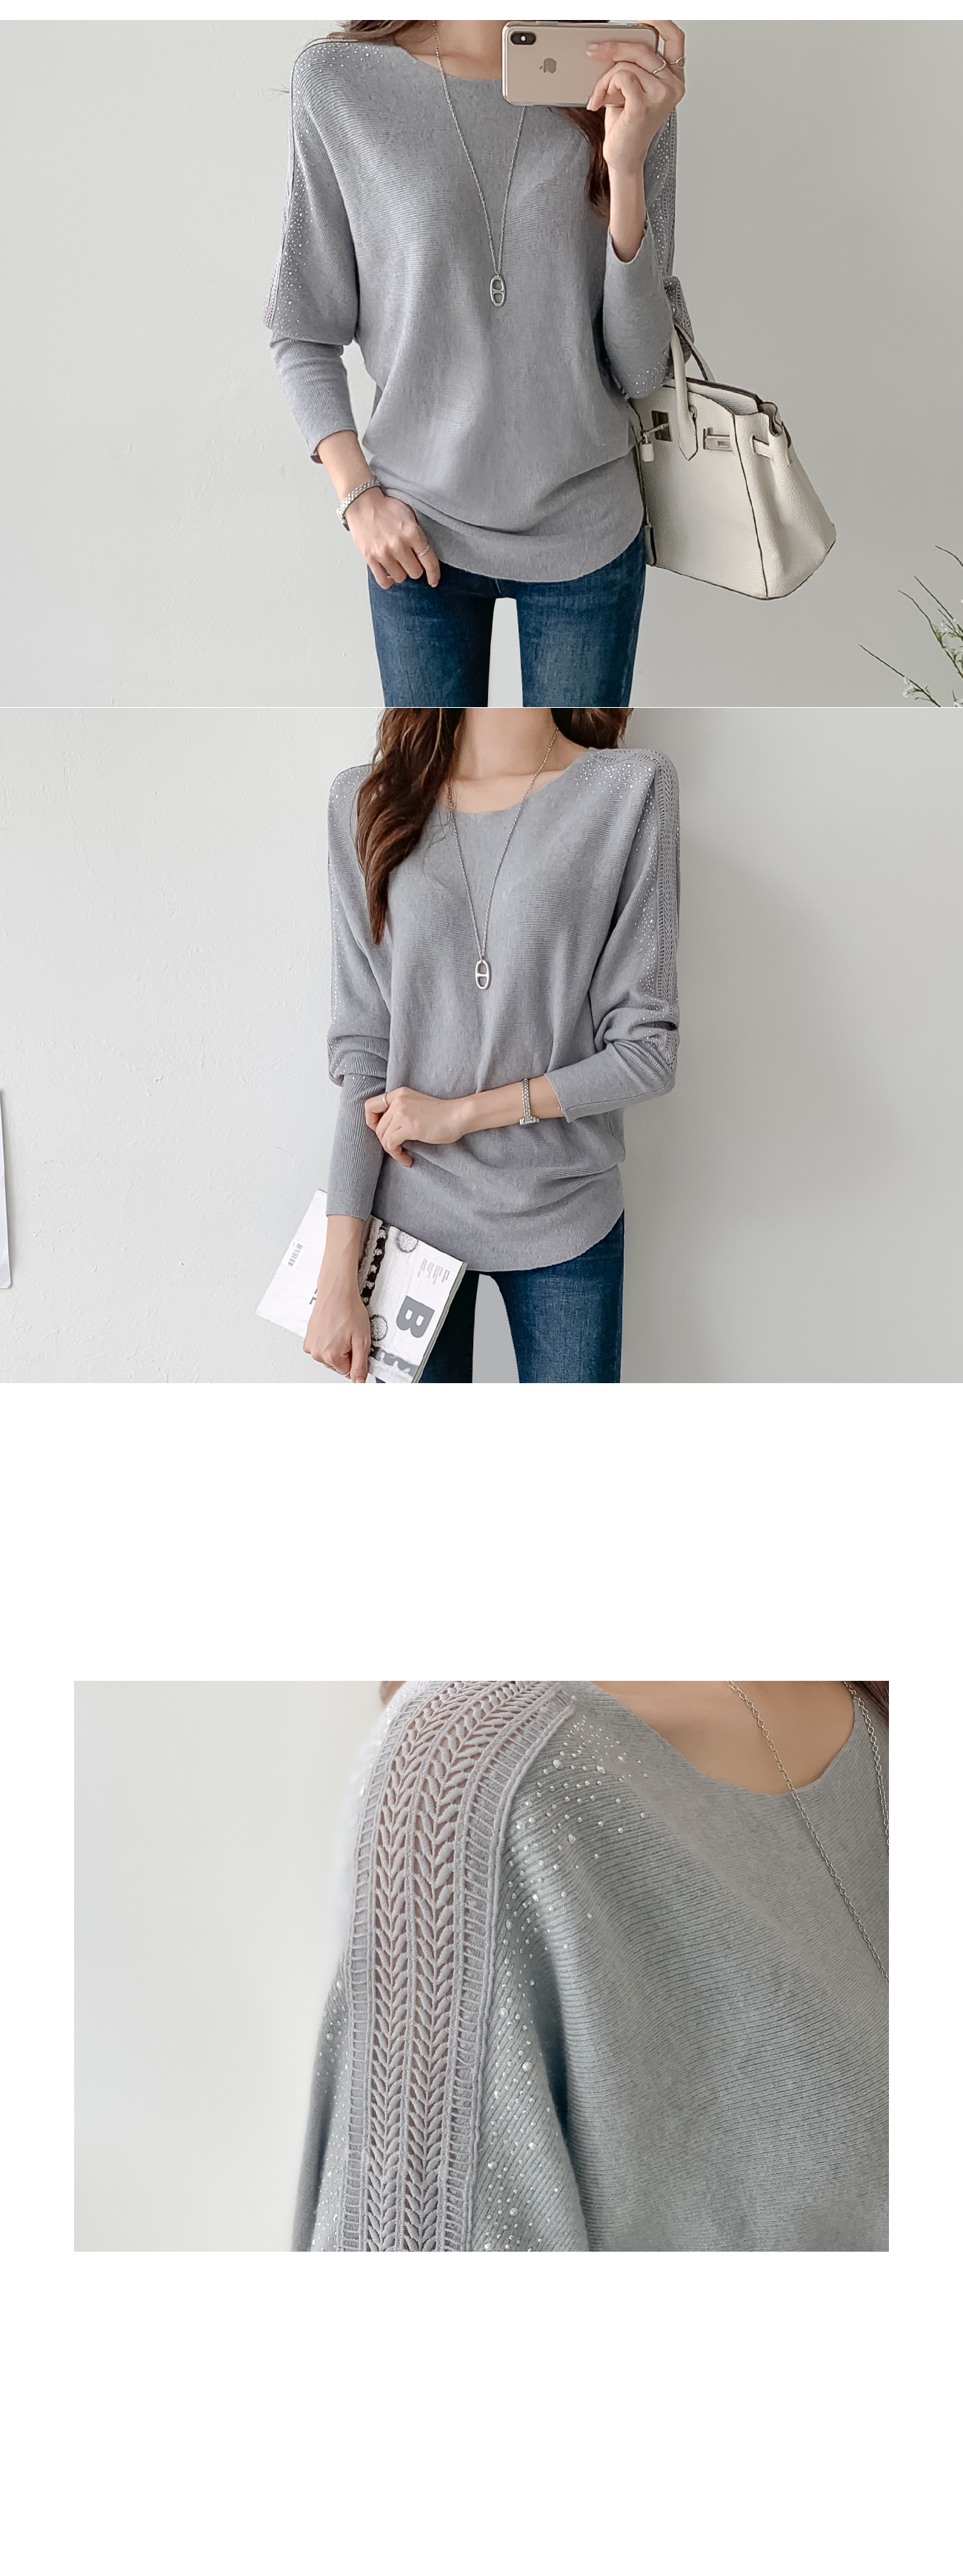 Lace Point Puff Knit #107549